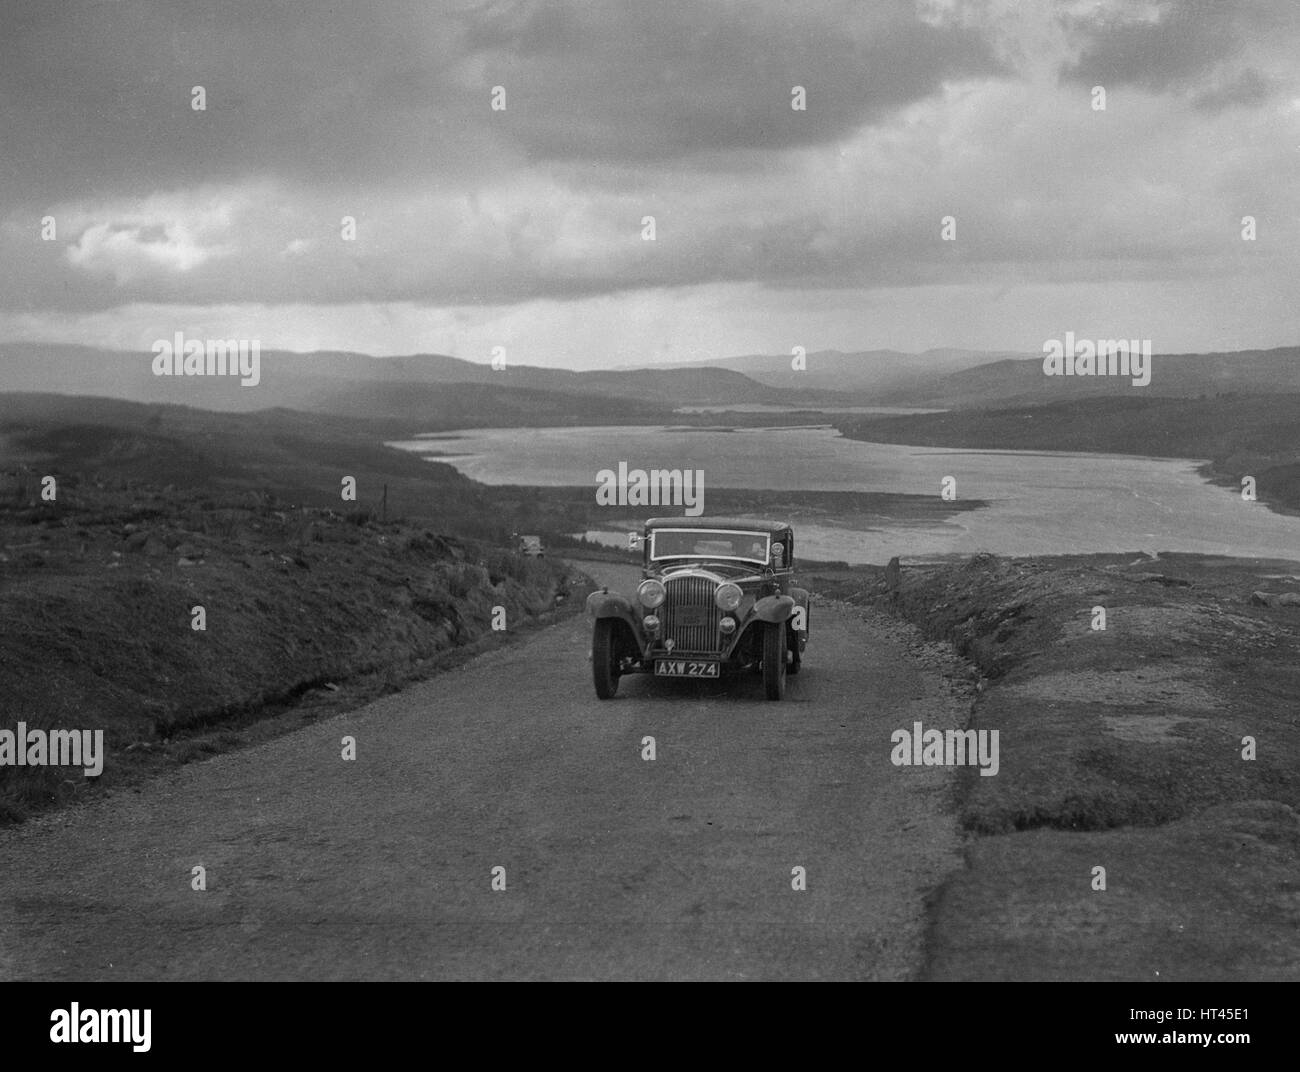 Bentley saloon of SK Thornley competing in the RSAC Scottish Rally, 1934. Artist: Bill Brunell. - Stock Image